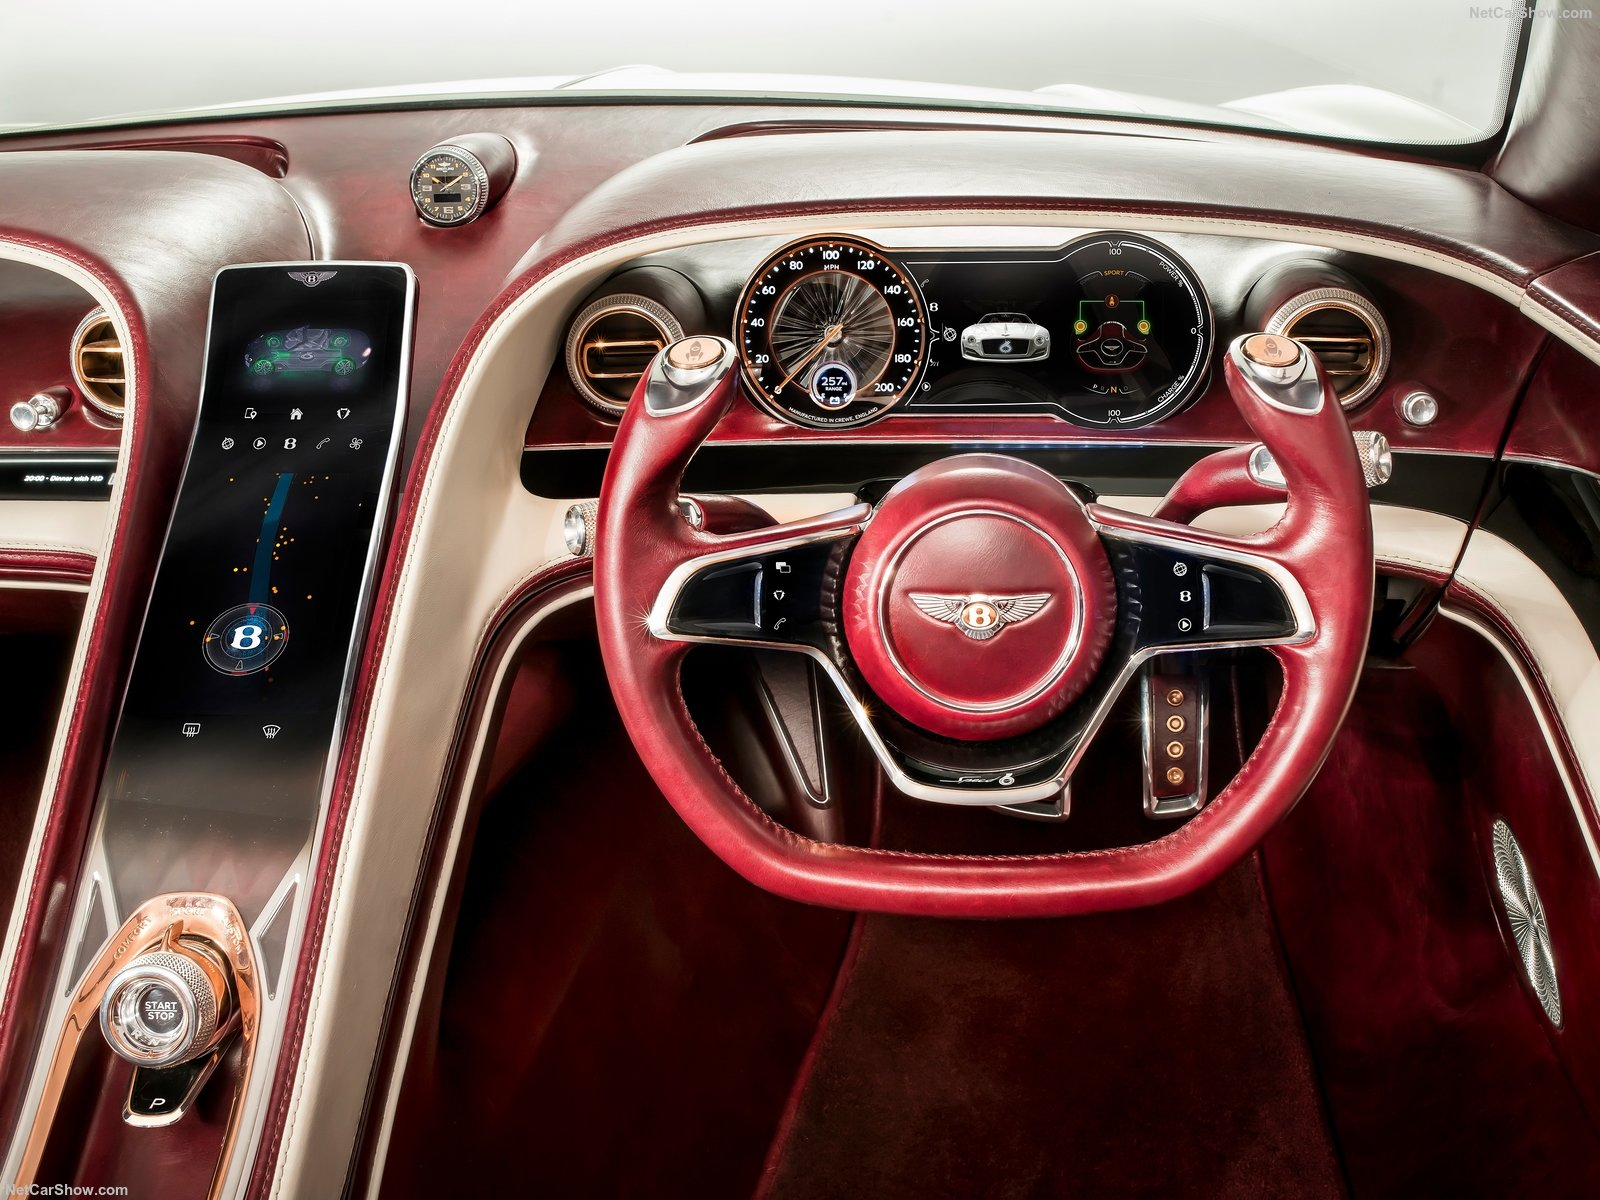 bentley exp 12 speed 6e hmi cluster ui дизайн